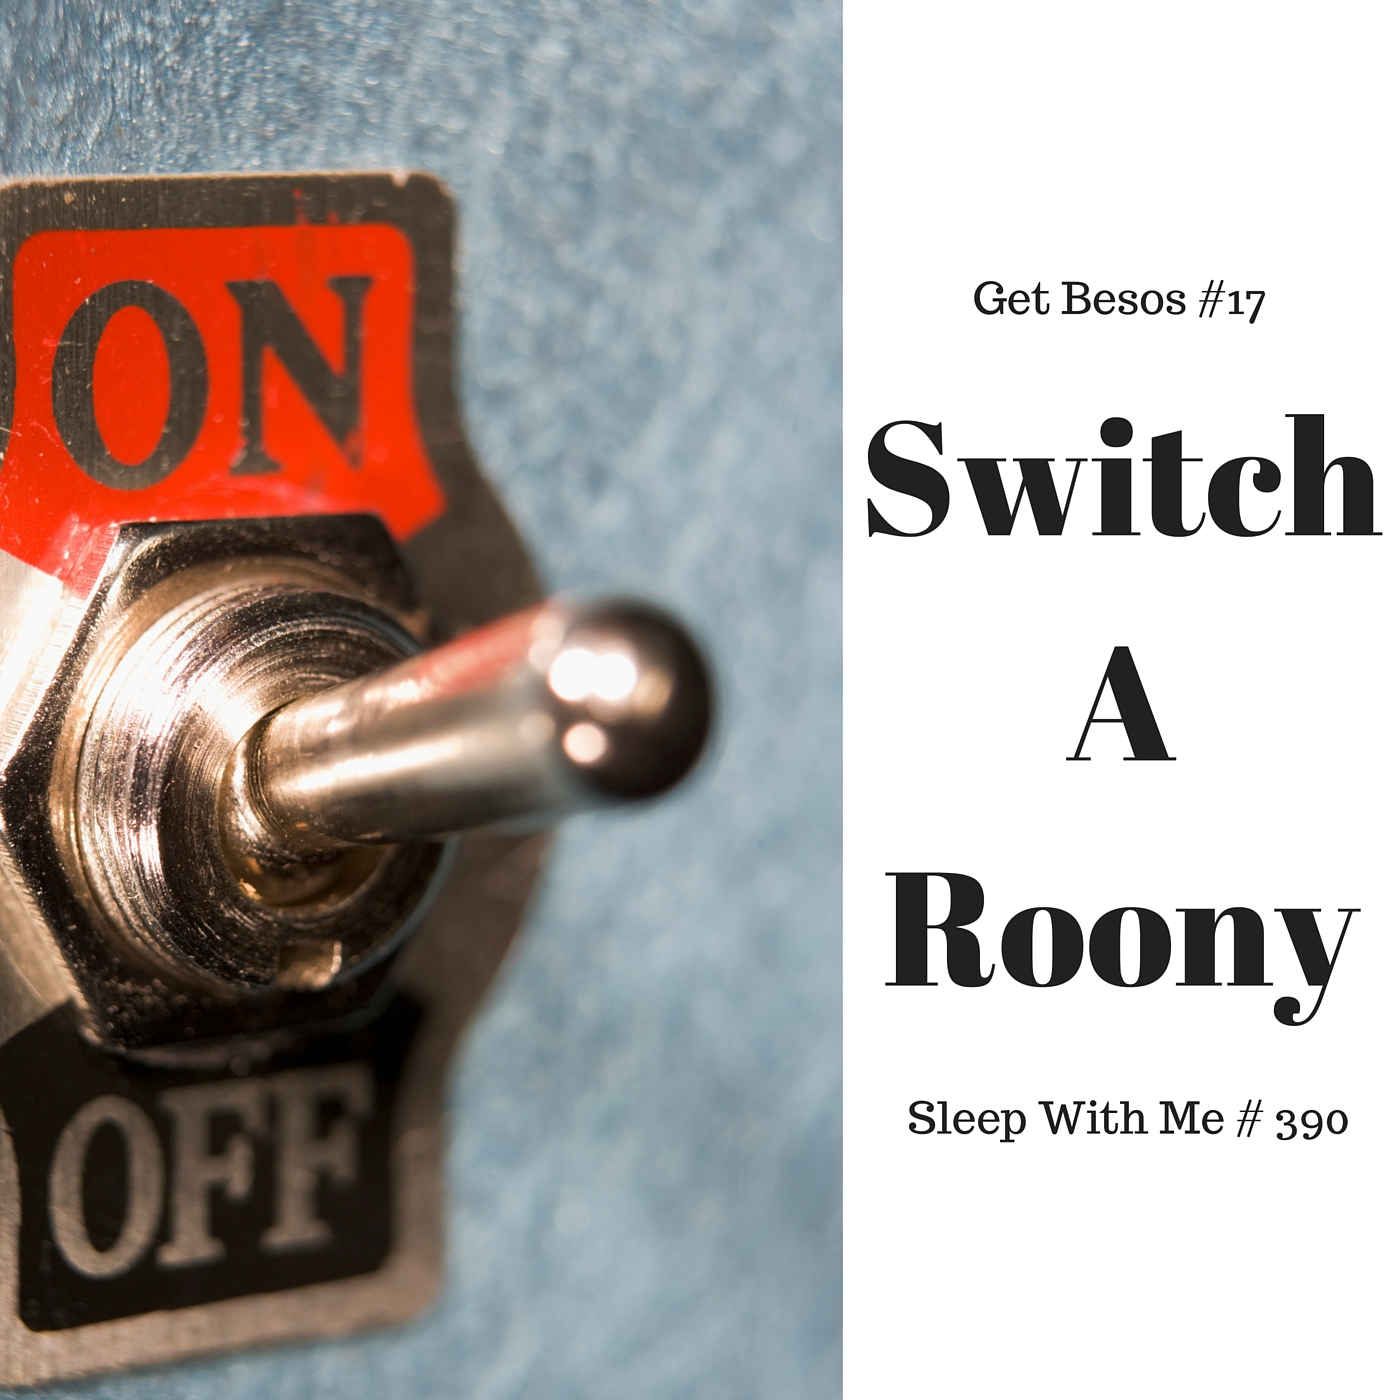 Switch-A-Roony | Get Besos #17 | Sleep With Me #390